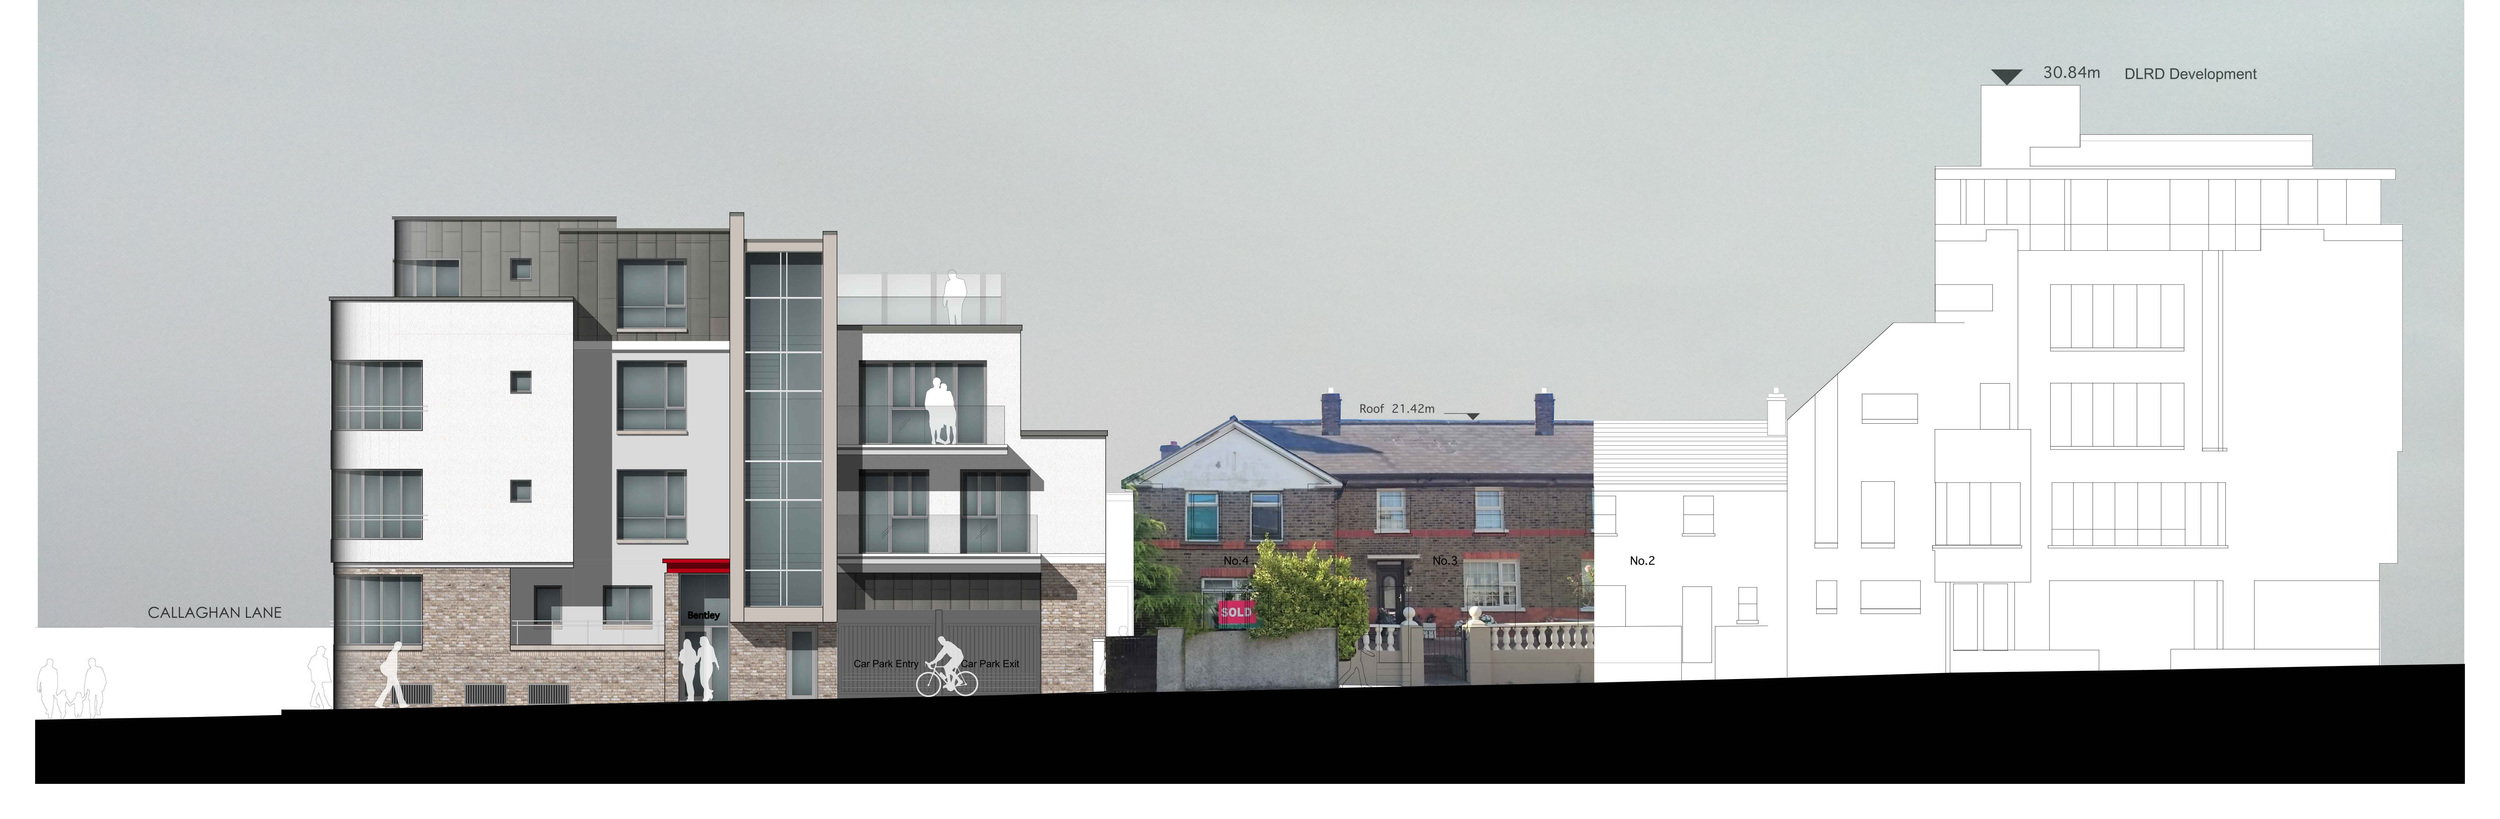 Proposed Elevation to Bentley Villas/Georges Place, Dun Laoghaire.